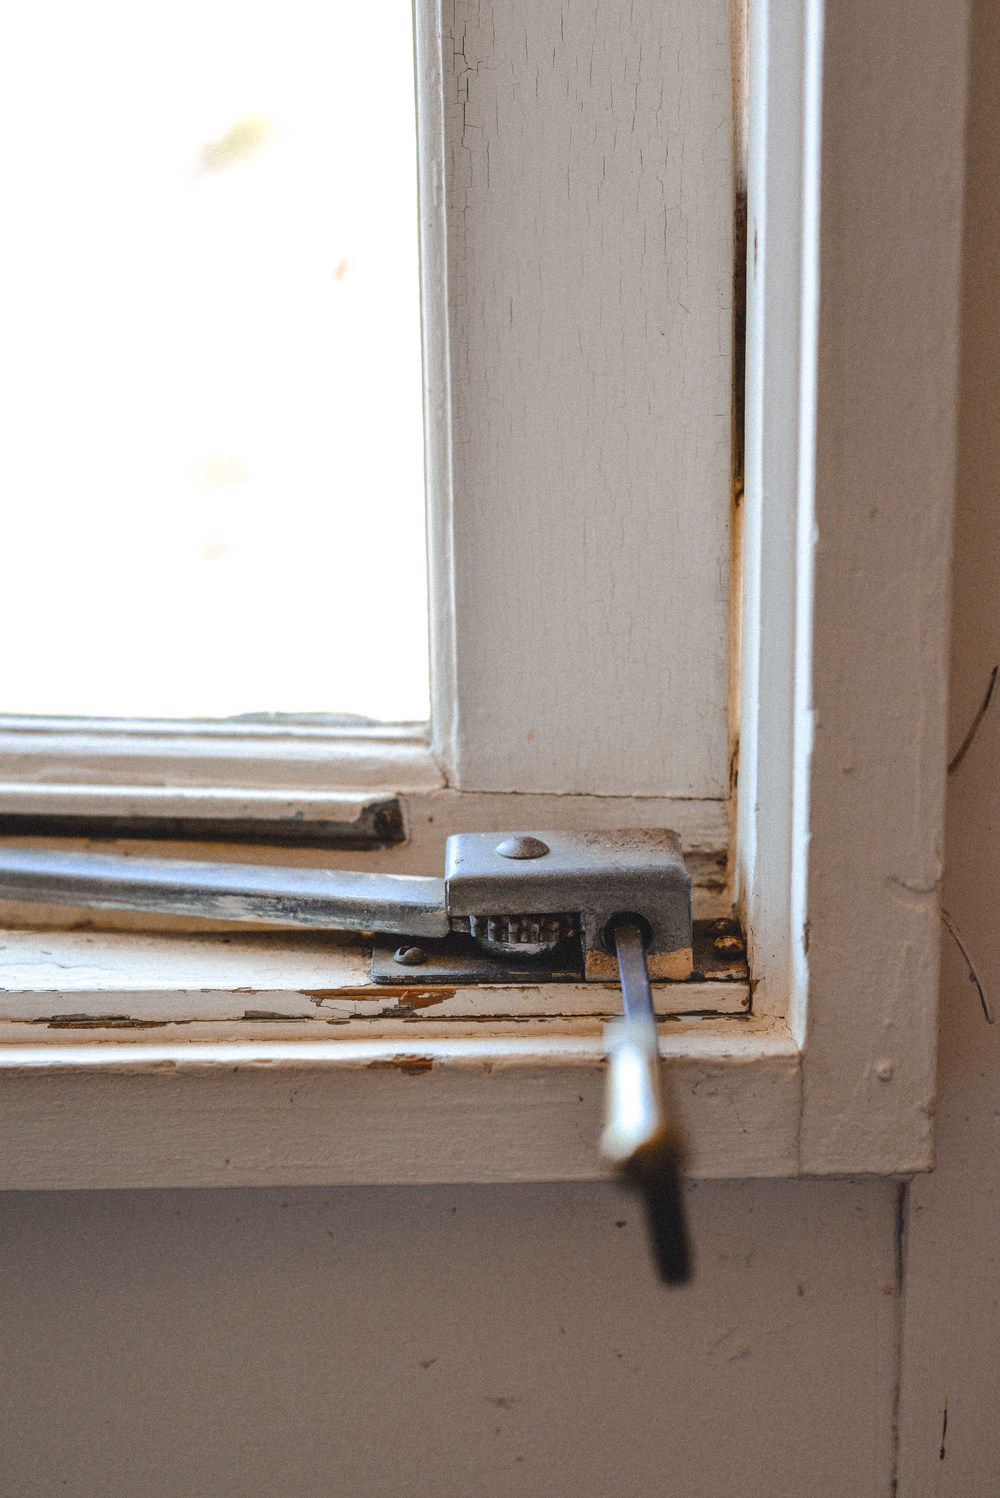 51 old window crank.jpg